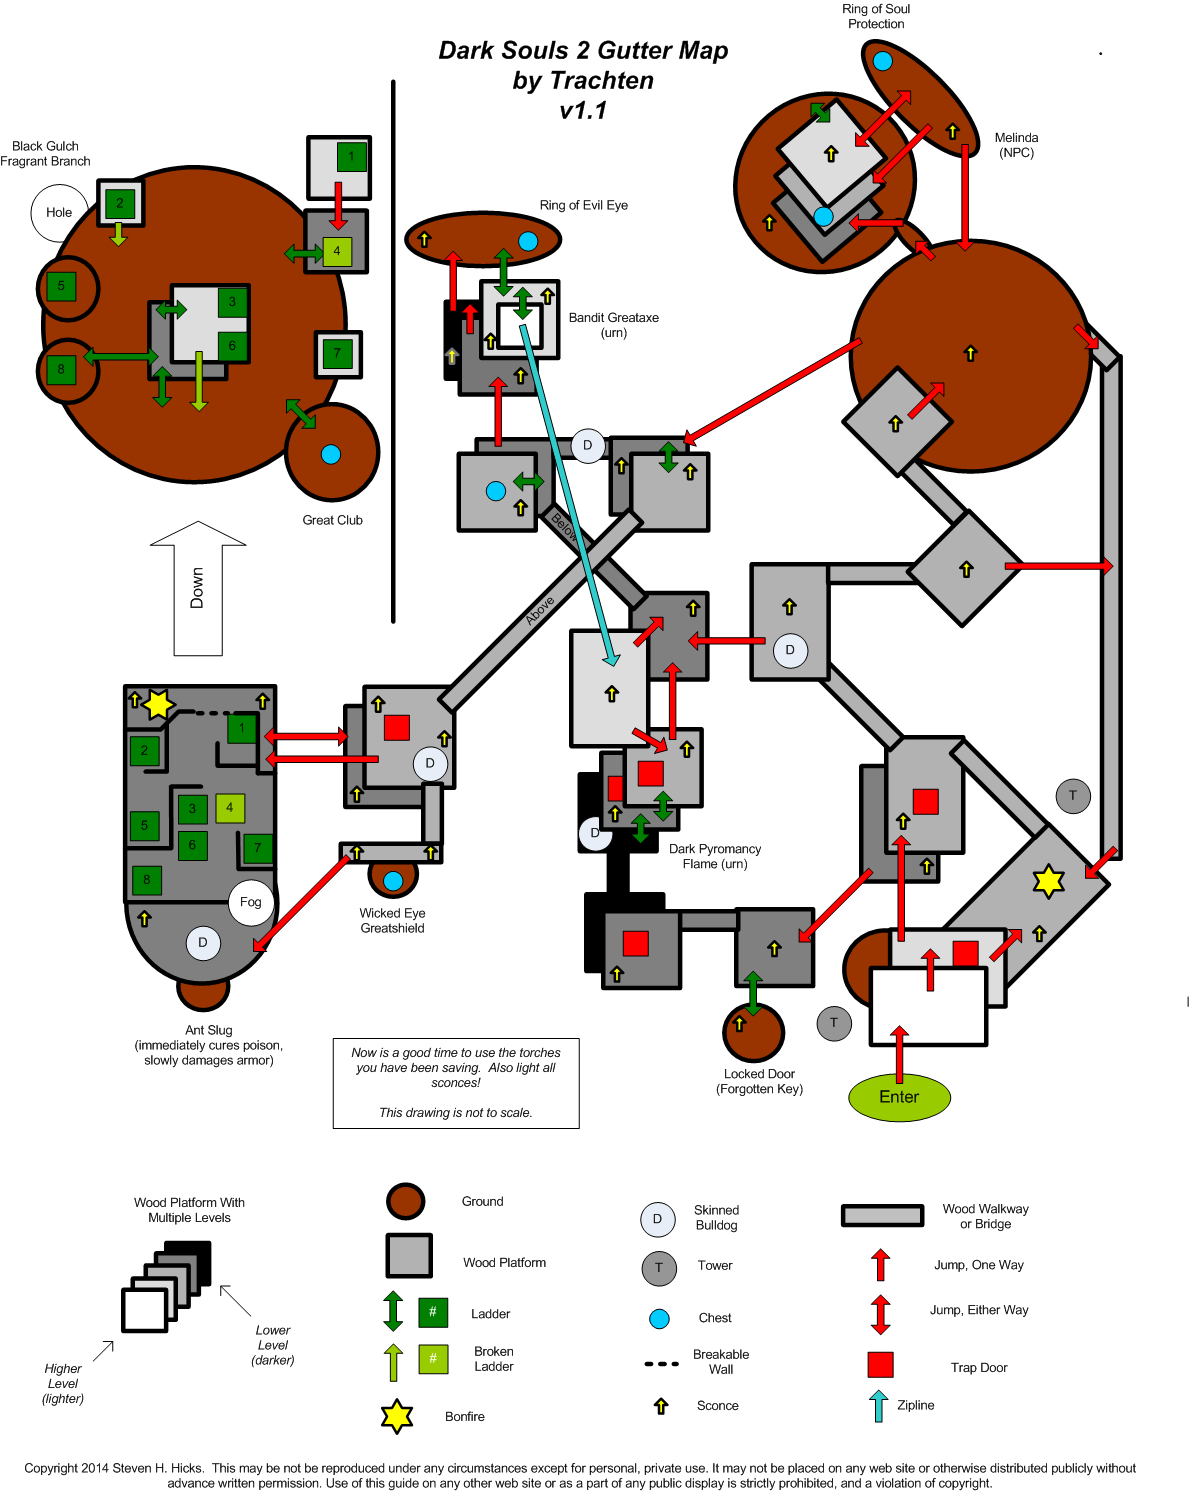 Maps dark souls 2 wiki the gutter map ccuart Images